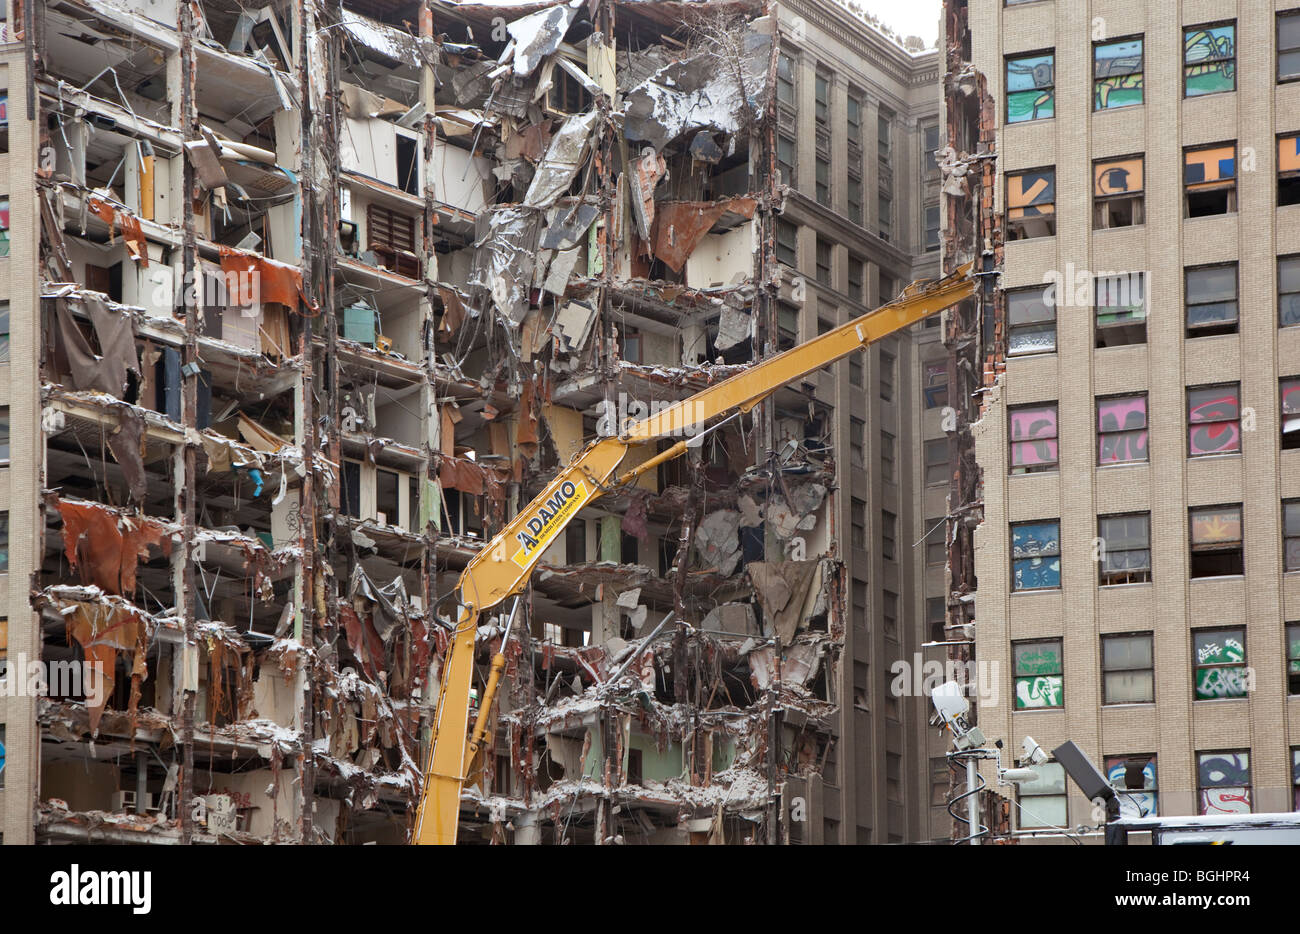 Detroit, Michigan - The vacant Lafayette Building being demolished in downtown Detroit. - Stock Image